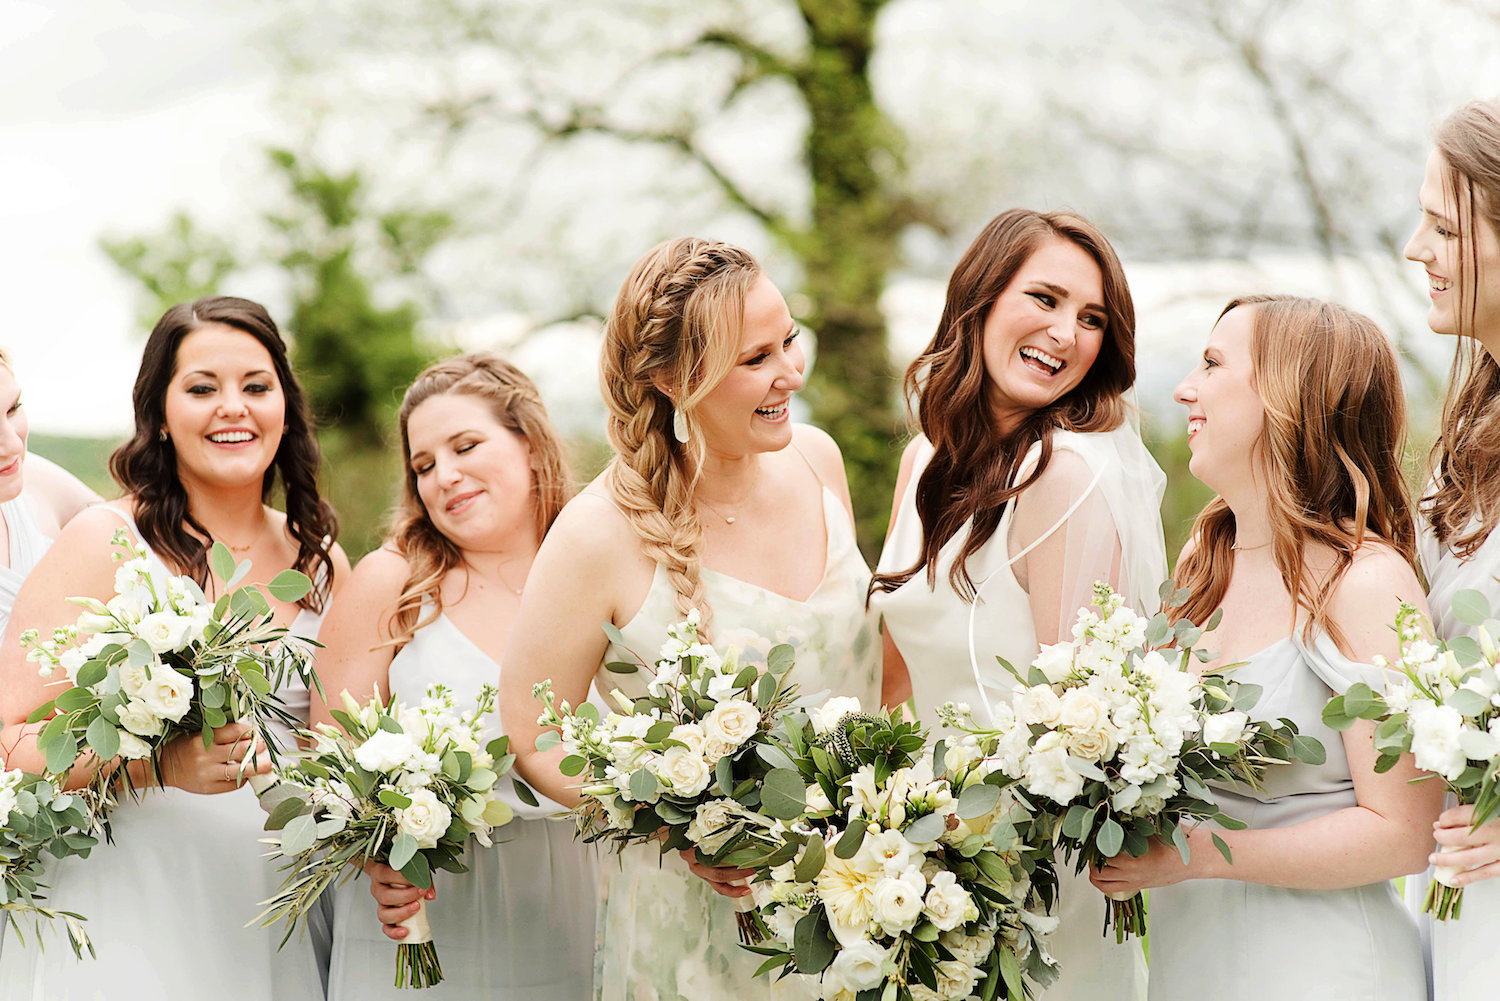 Light grey bridesmaids dresses perfect for this neutral palette. Photography taken at Raspberry Plain Manor in Leesburg, Virginia by the Photography Smiths.